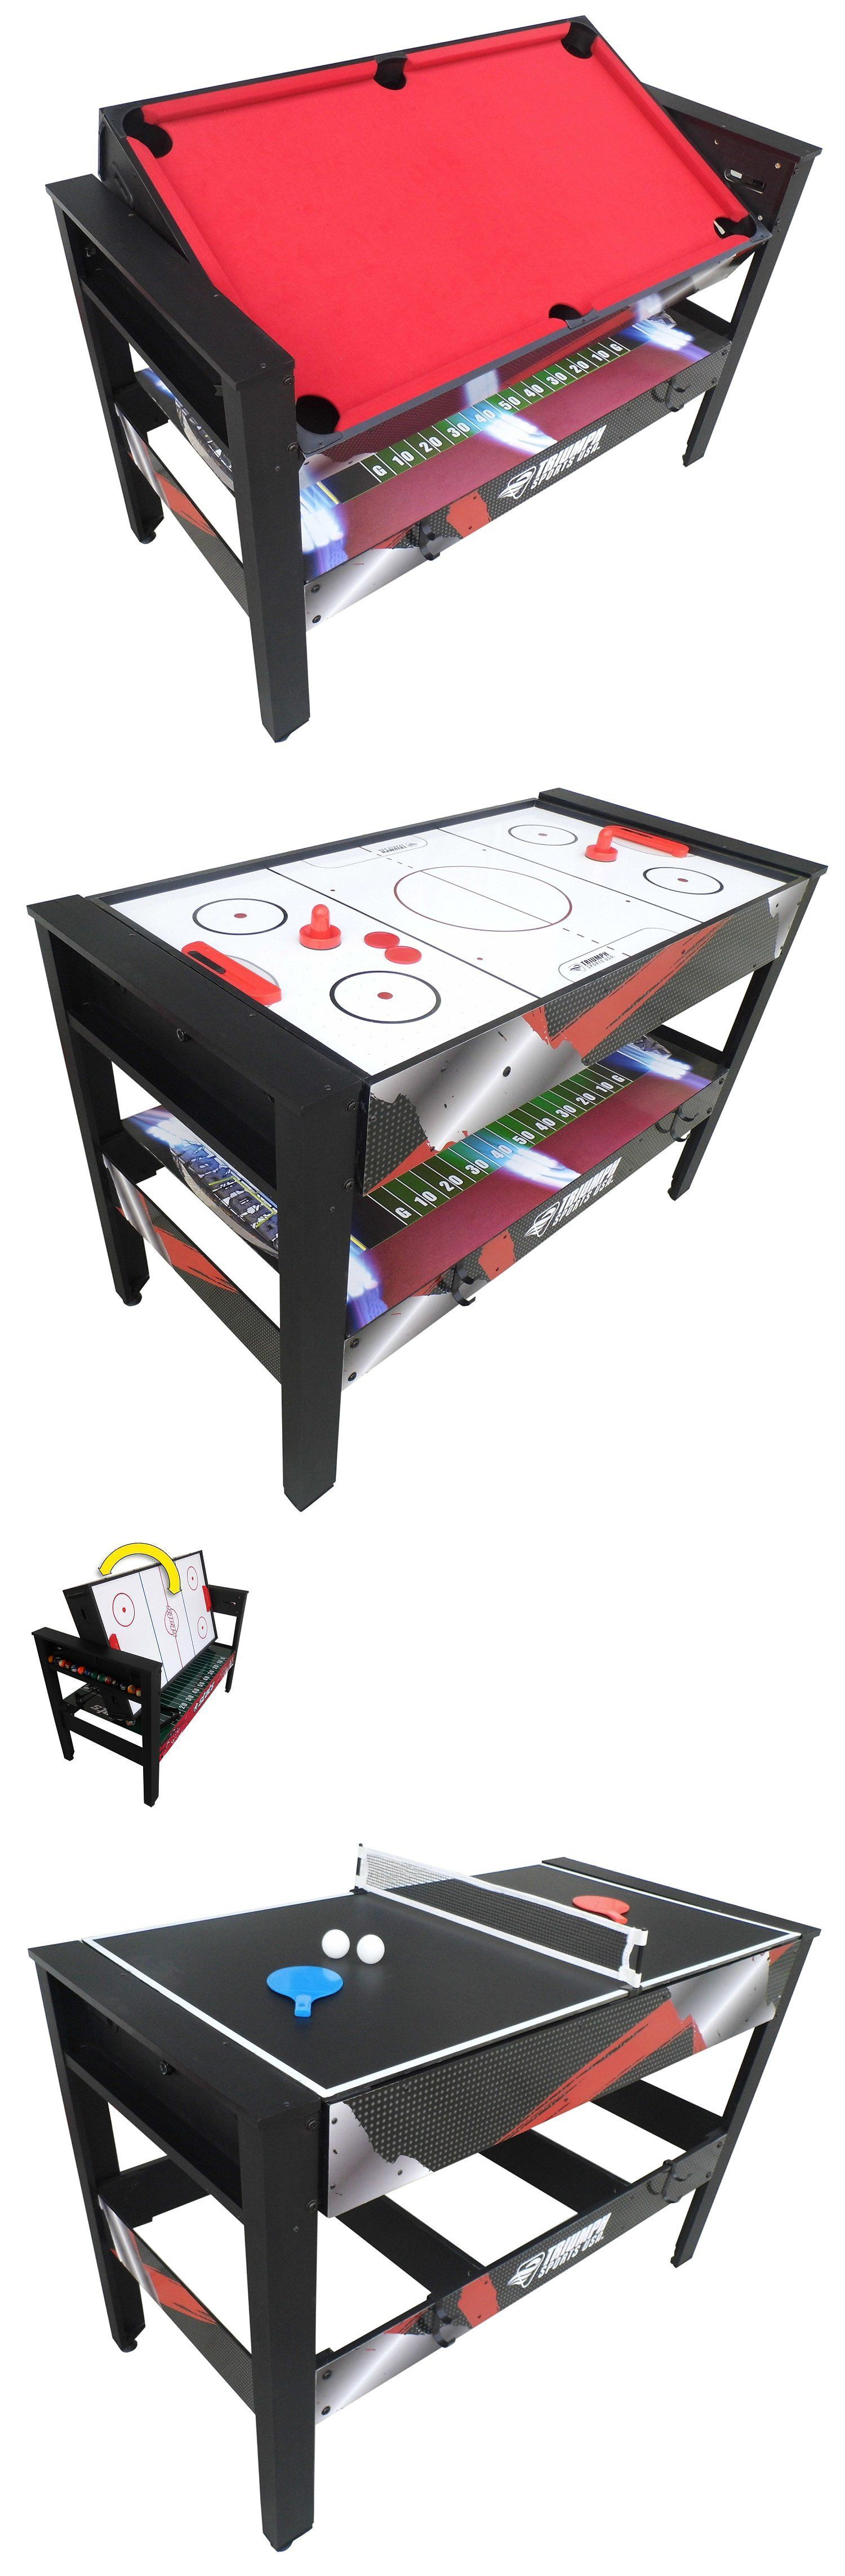 Tables 97075: 4 In 1 Gametable Swivel Multi Table Game Tables Games Gaming  Pool For